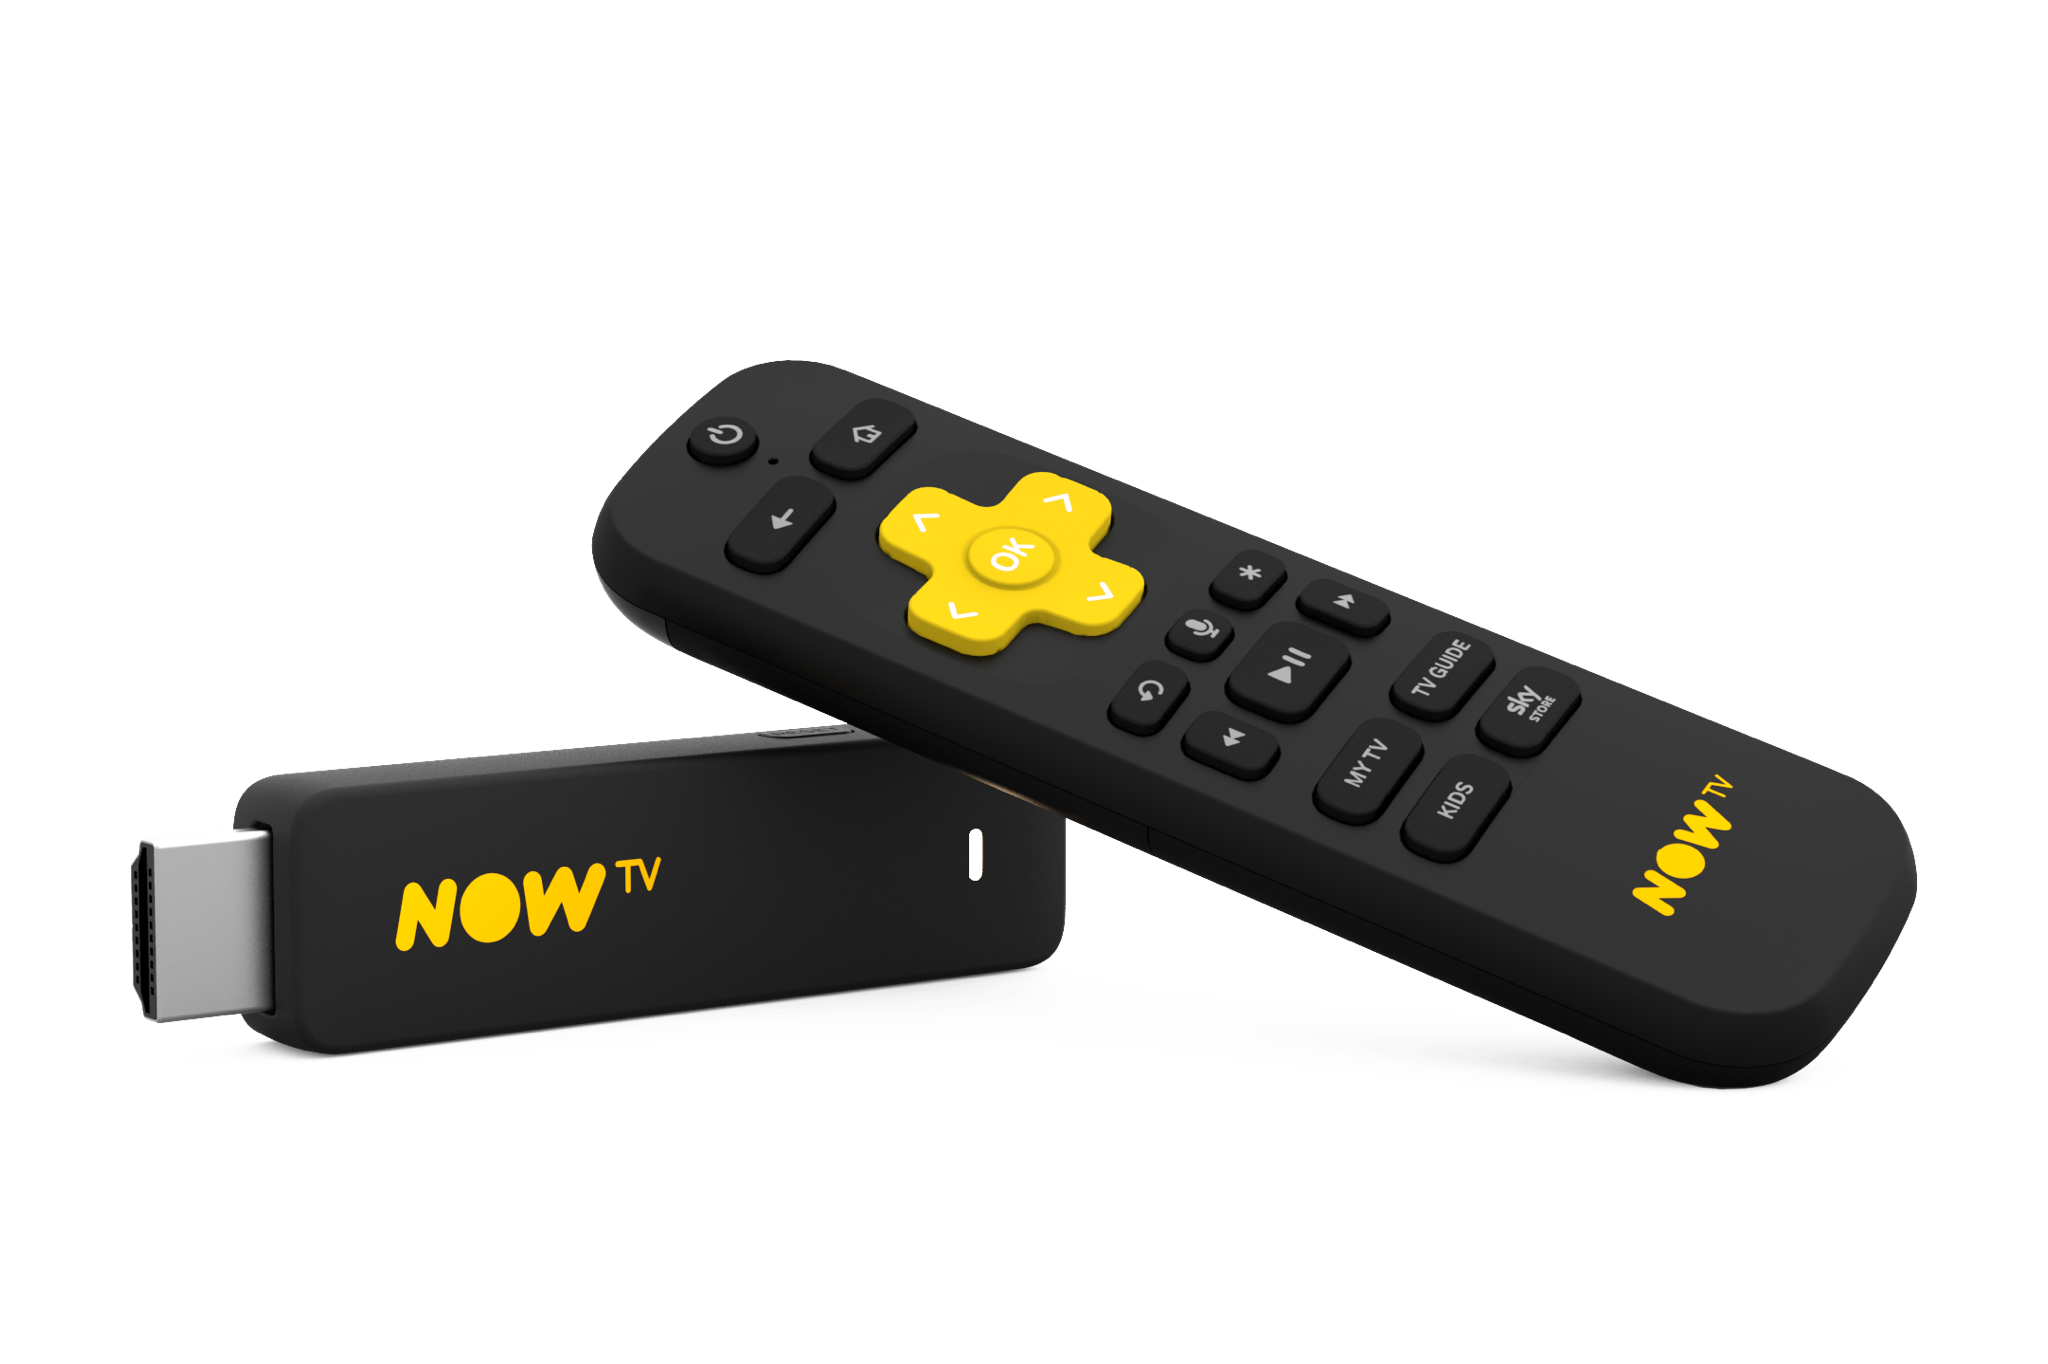 How To Watch Now Tv On Tv